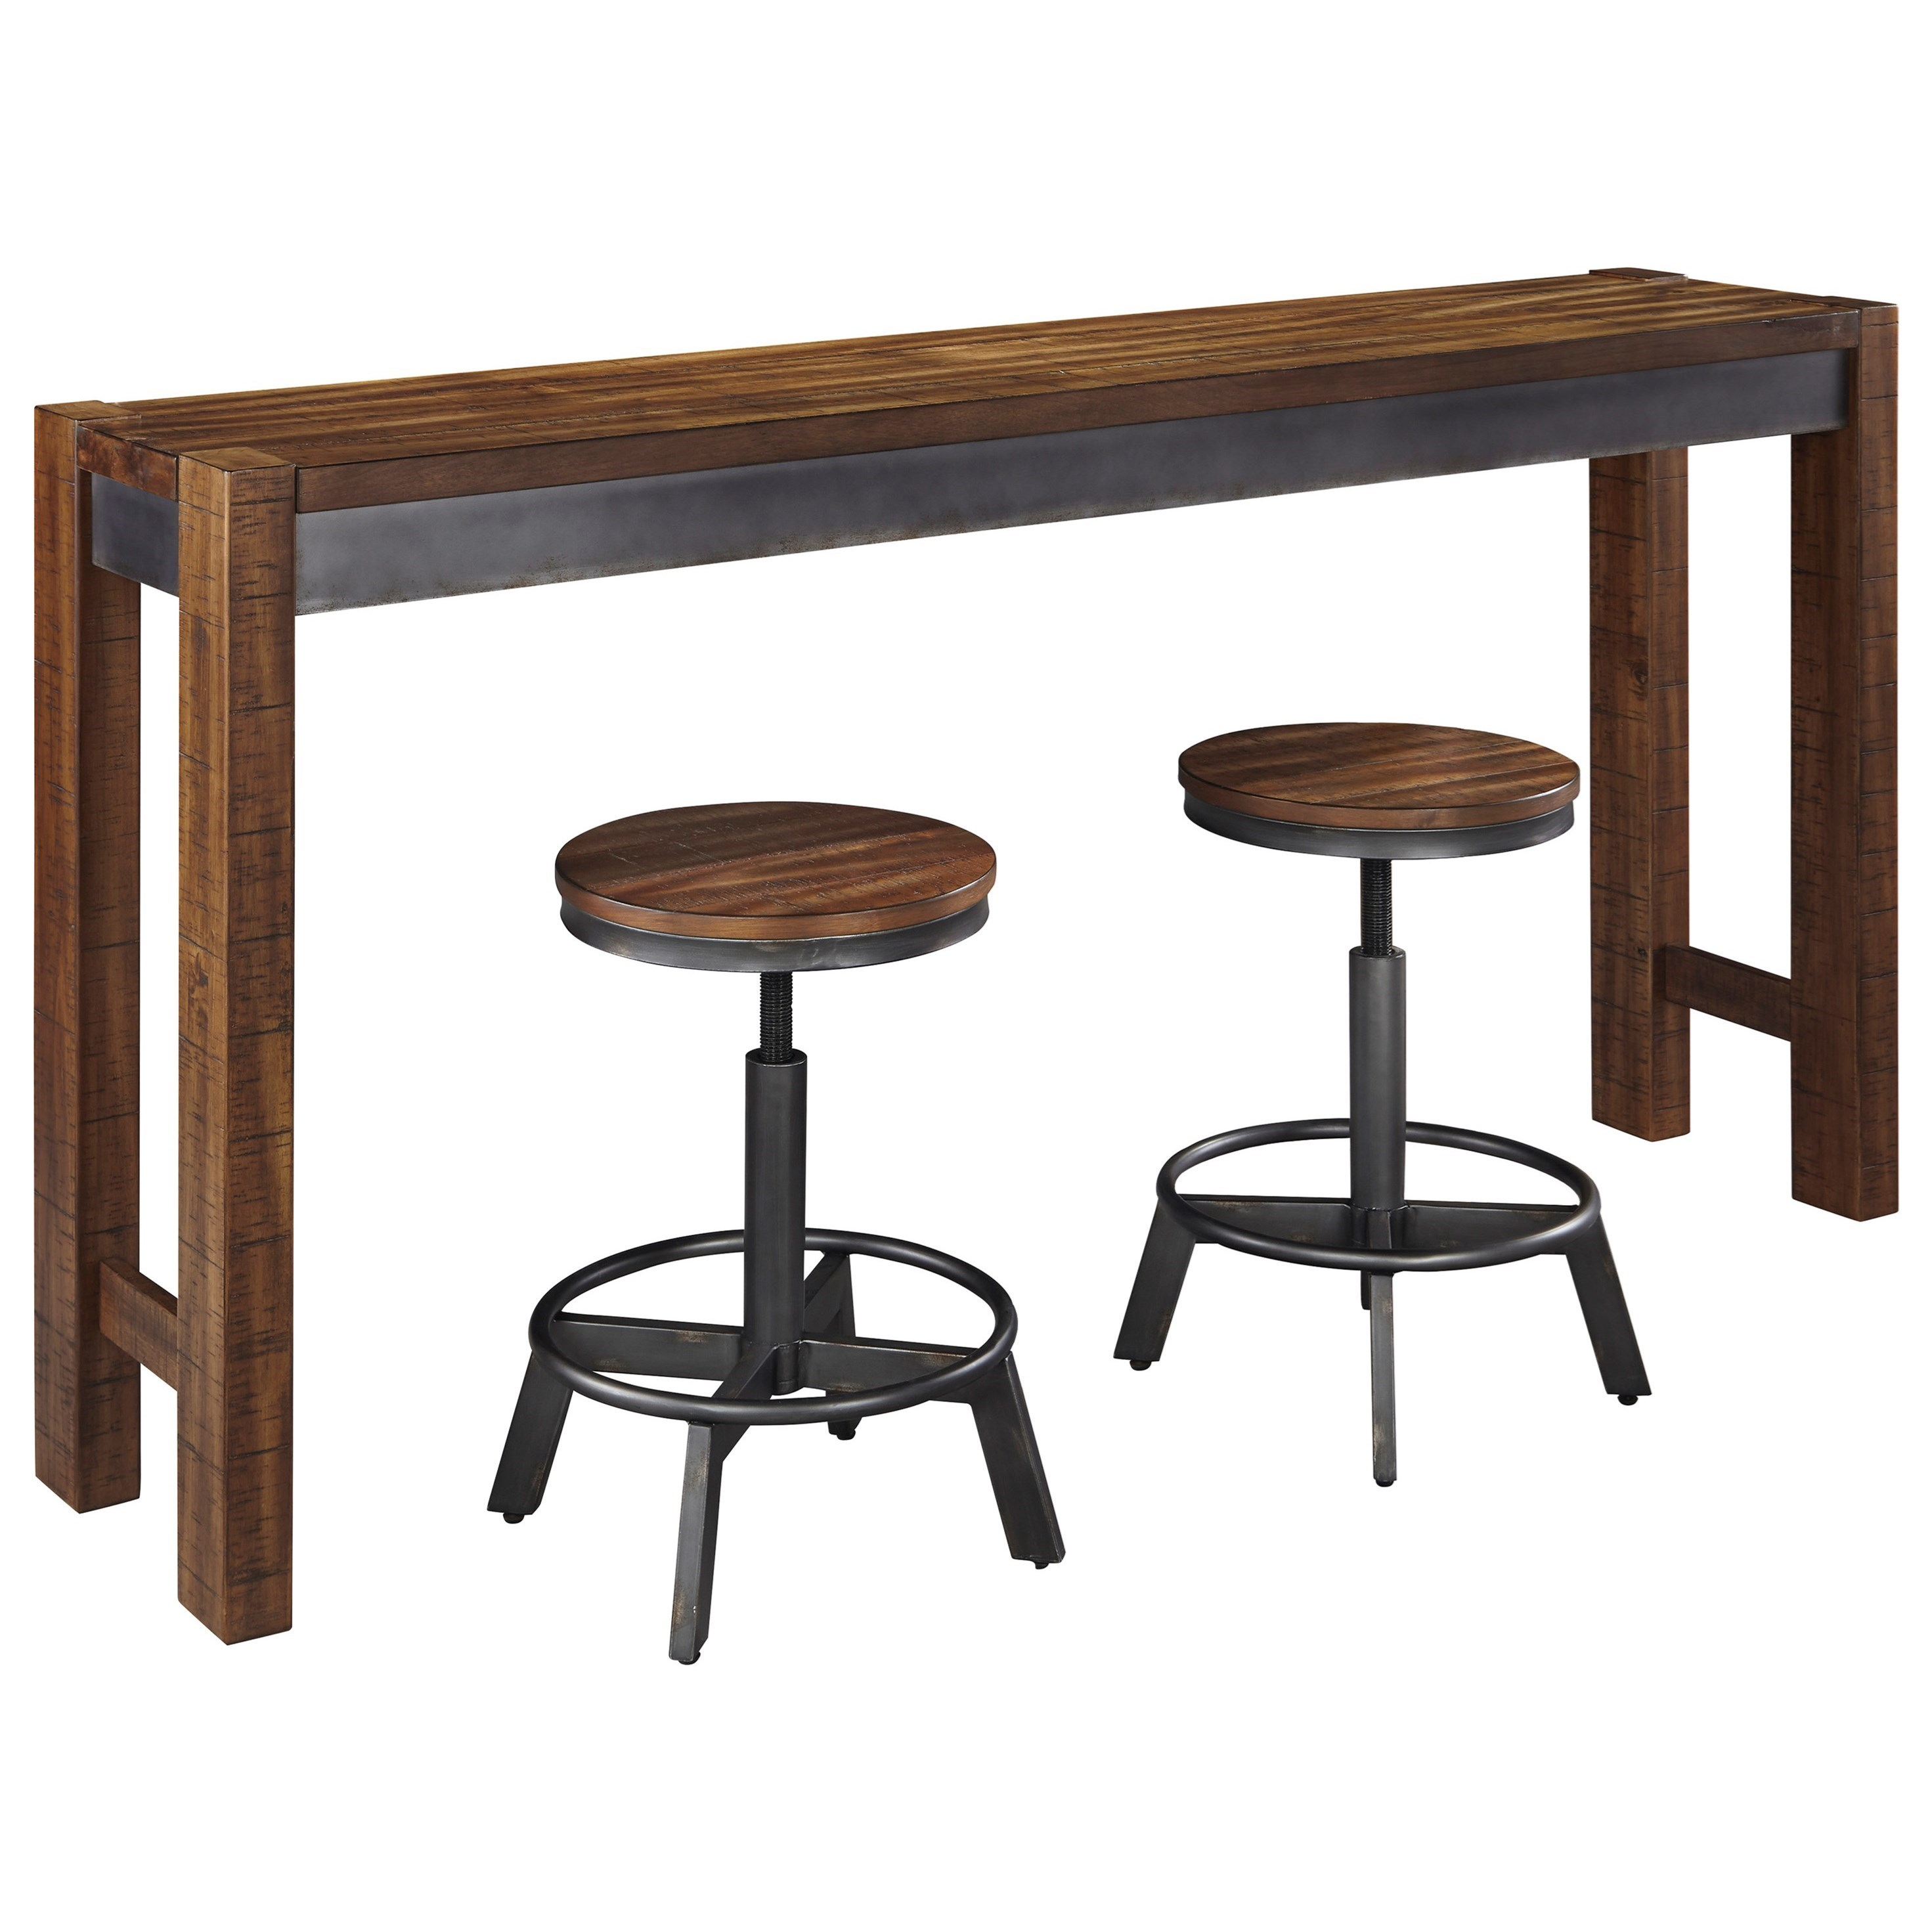 Bar Table With Chairs Torjin 3 Piece Rustic Long Counter Table Set By Signature Design By Ashley At Wayside Furniture